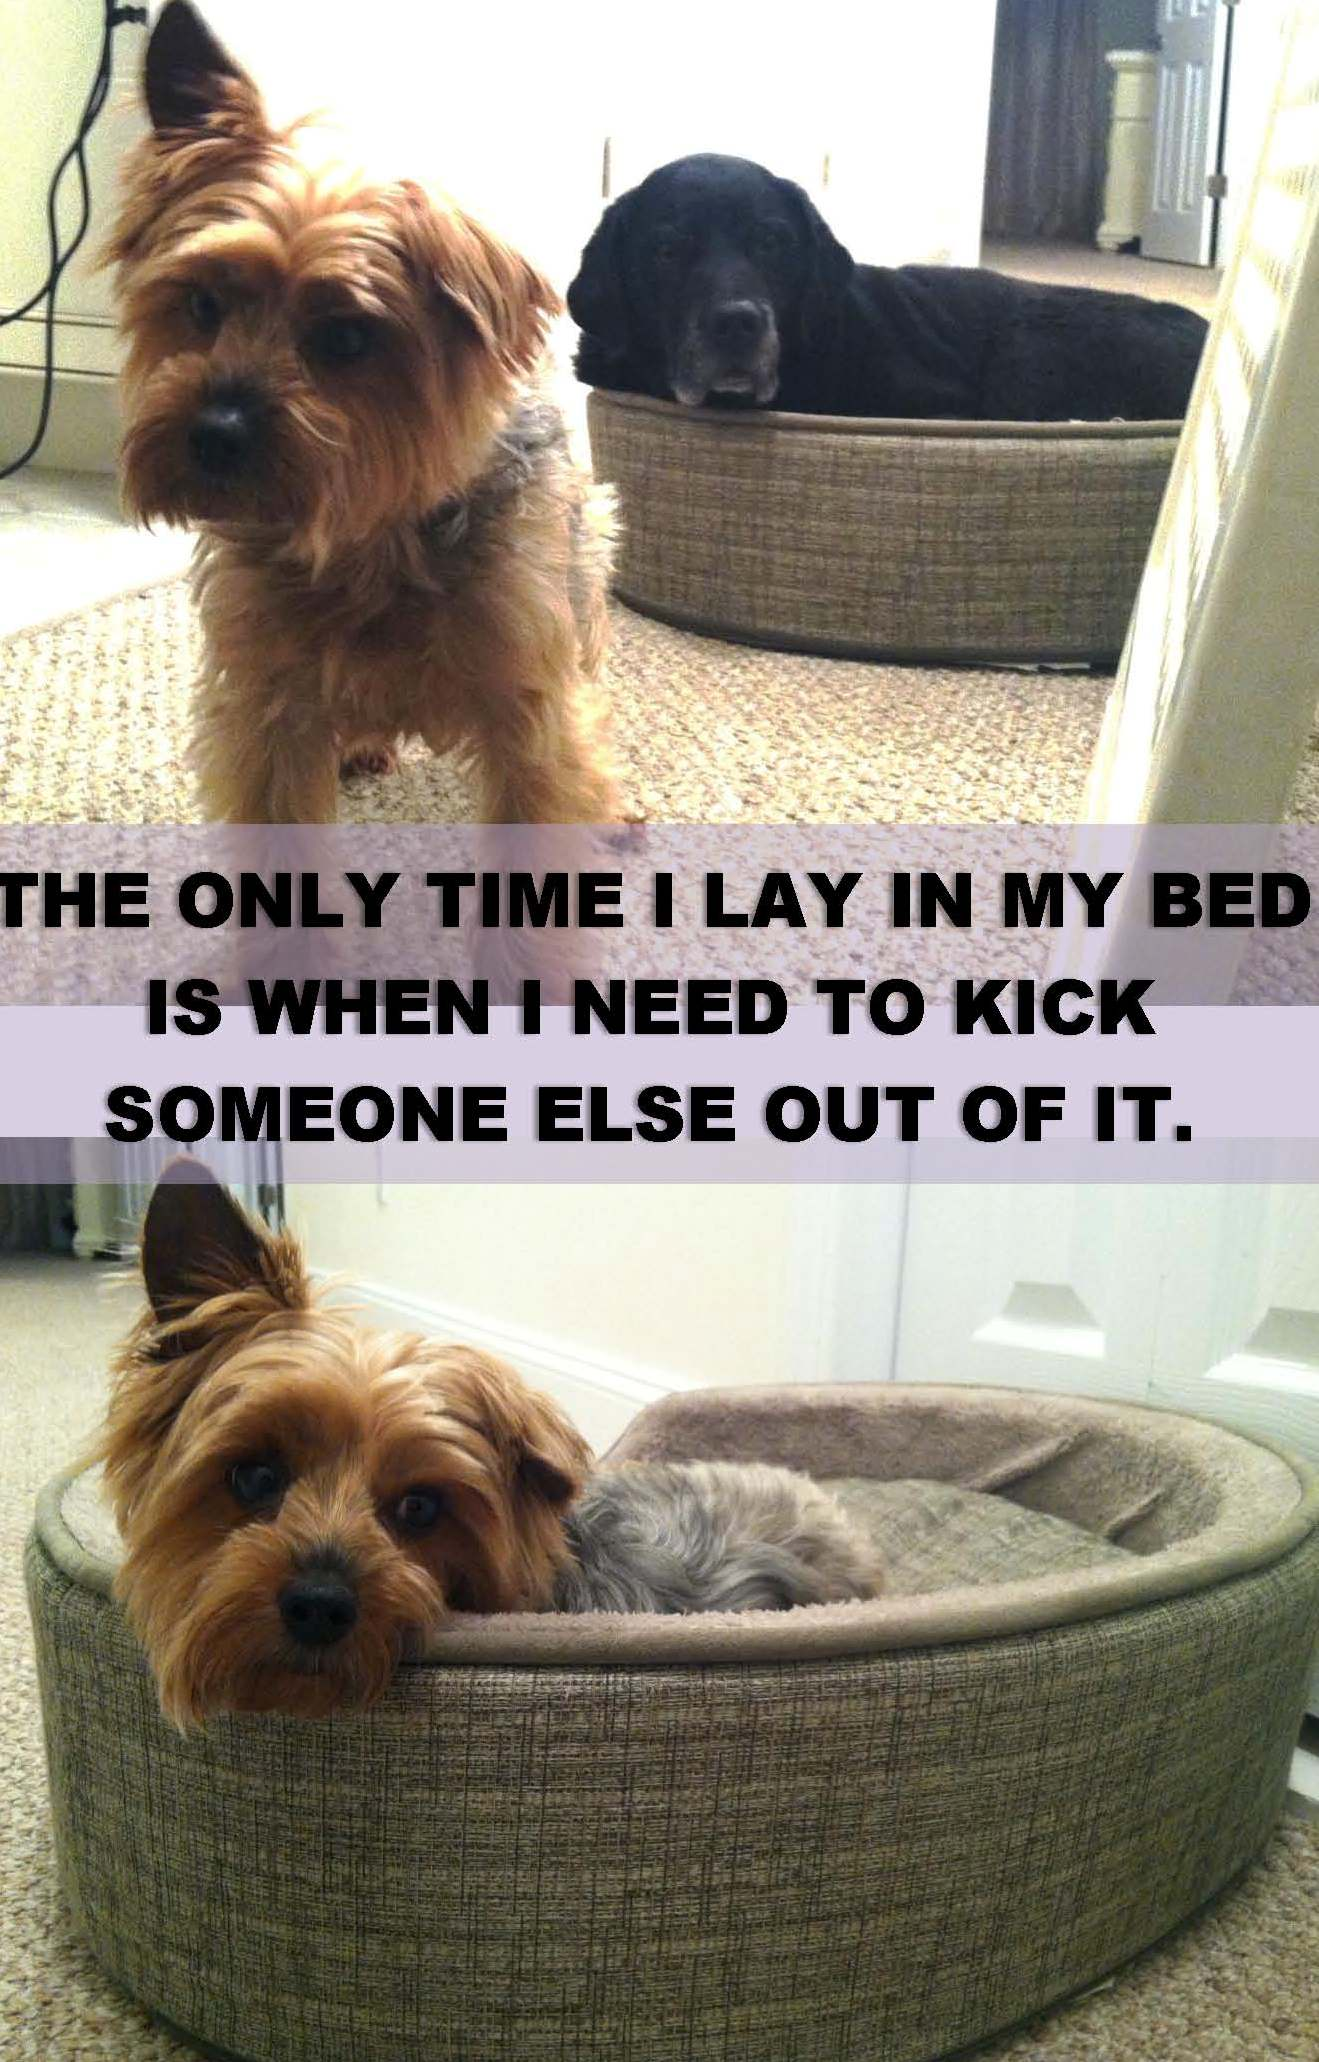 Dog hogging the bed - Once She Noticed That People Were Laughing At Cleo In The Little Dog Bed She Rushed Over And Barked Her Out